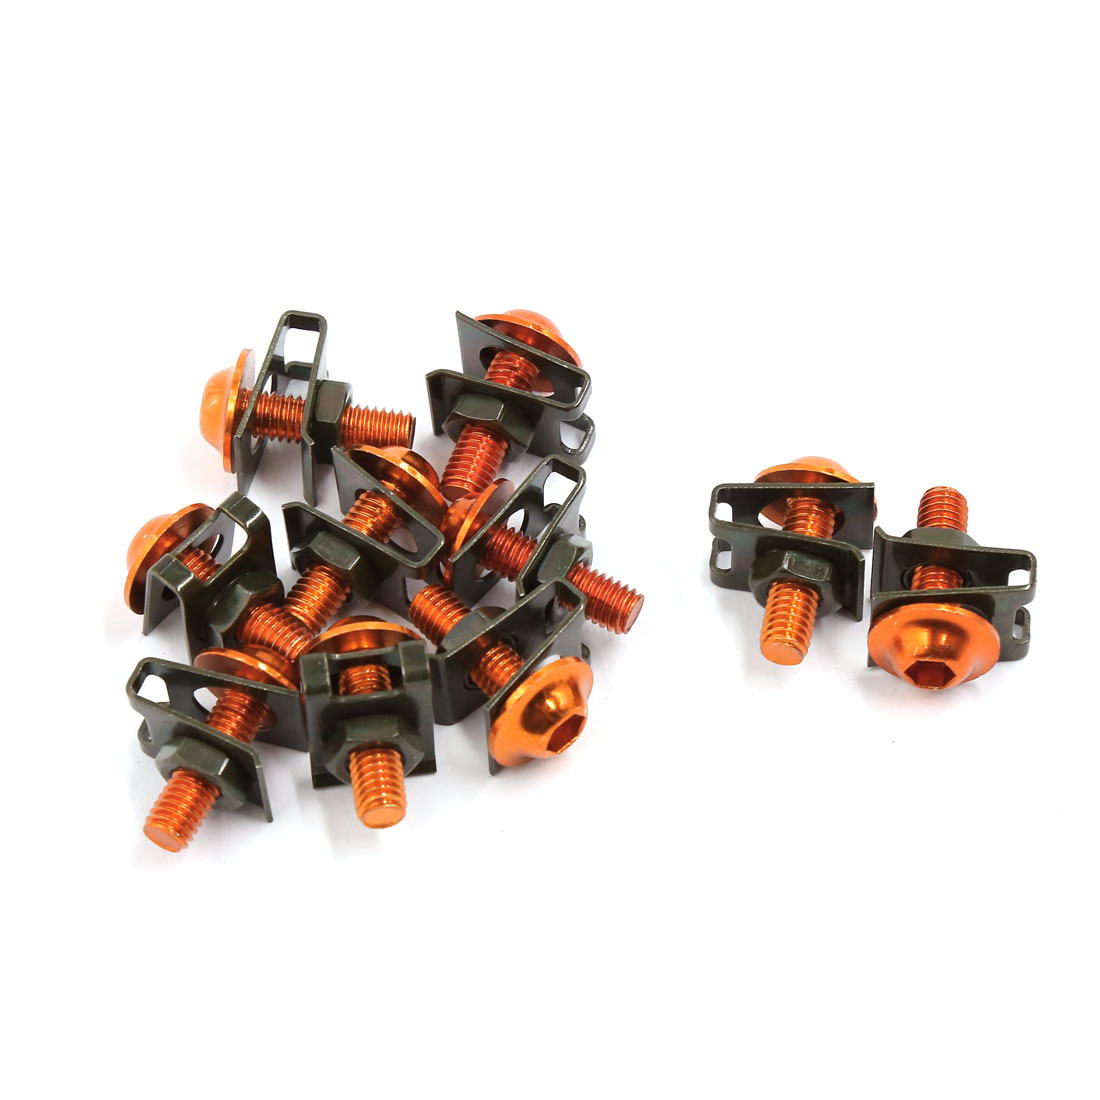 10pcs M6 Motorcycle Sportbikes Fairing Bolts Screws Fastener Clips Kit Orange